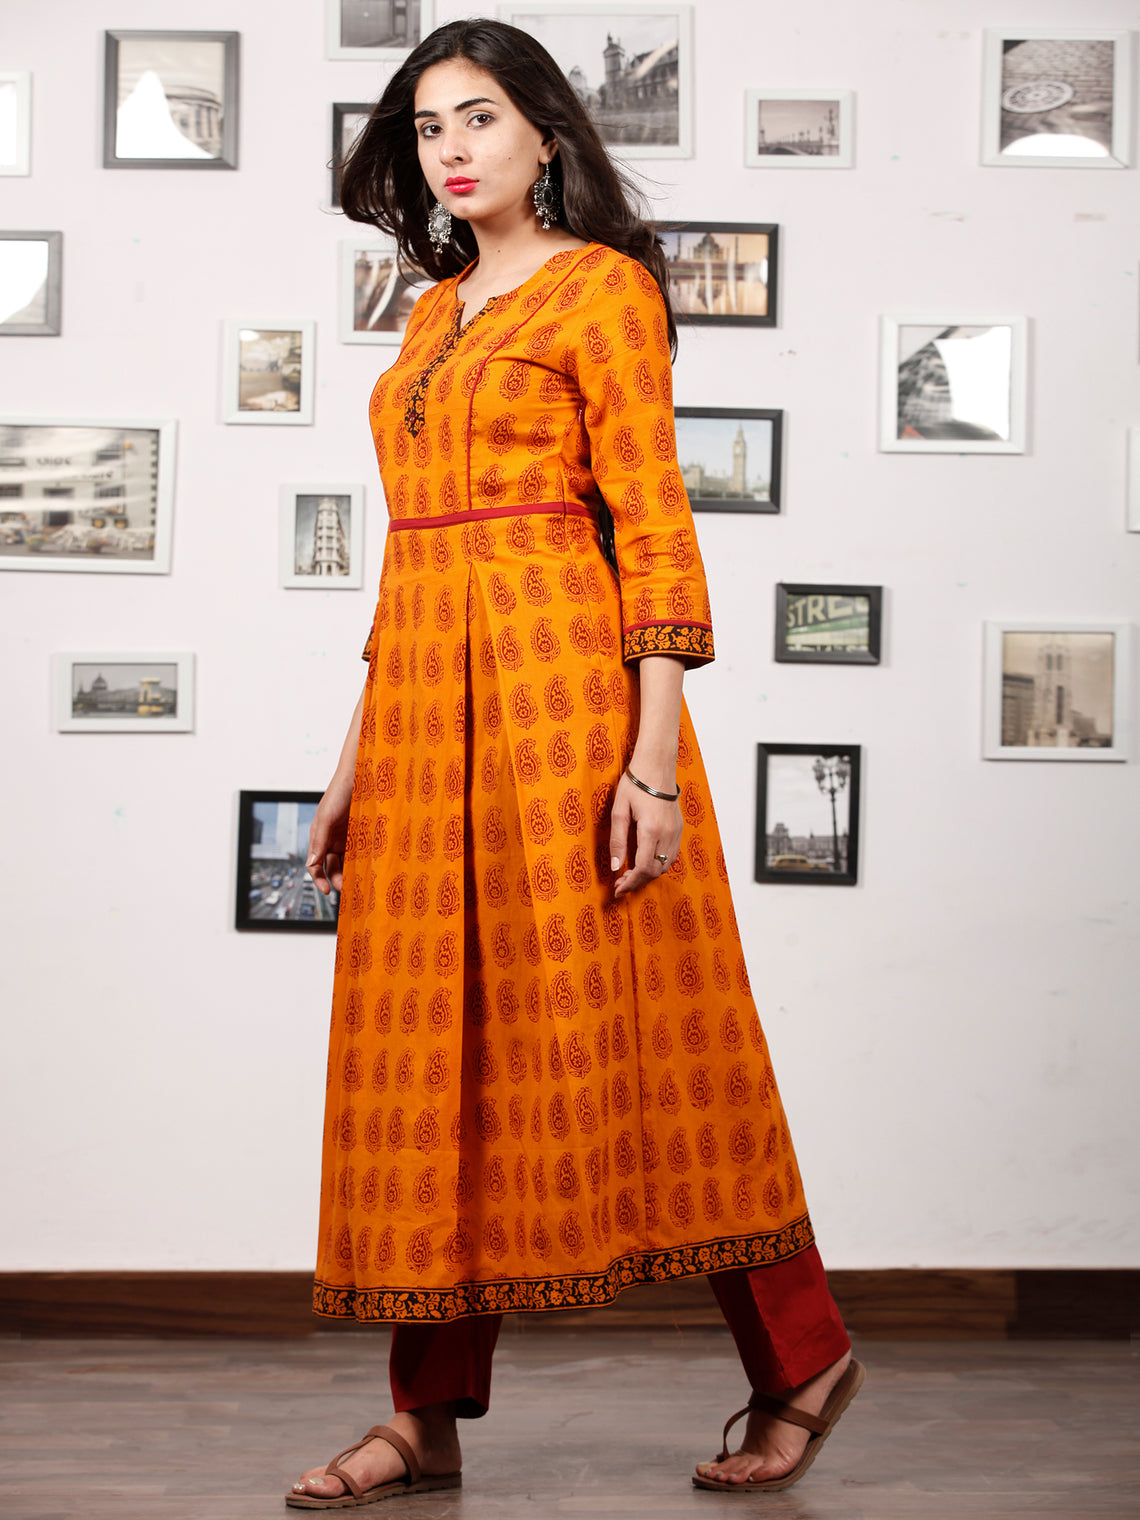 Orange Maroon Black Bagh Printed Kurta in Natural Colors - K131F1722